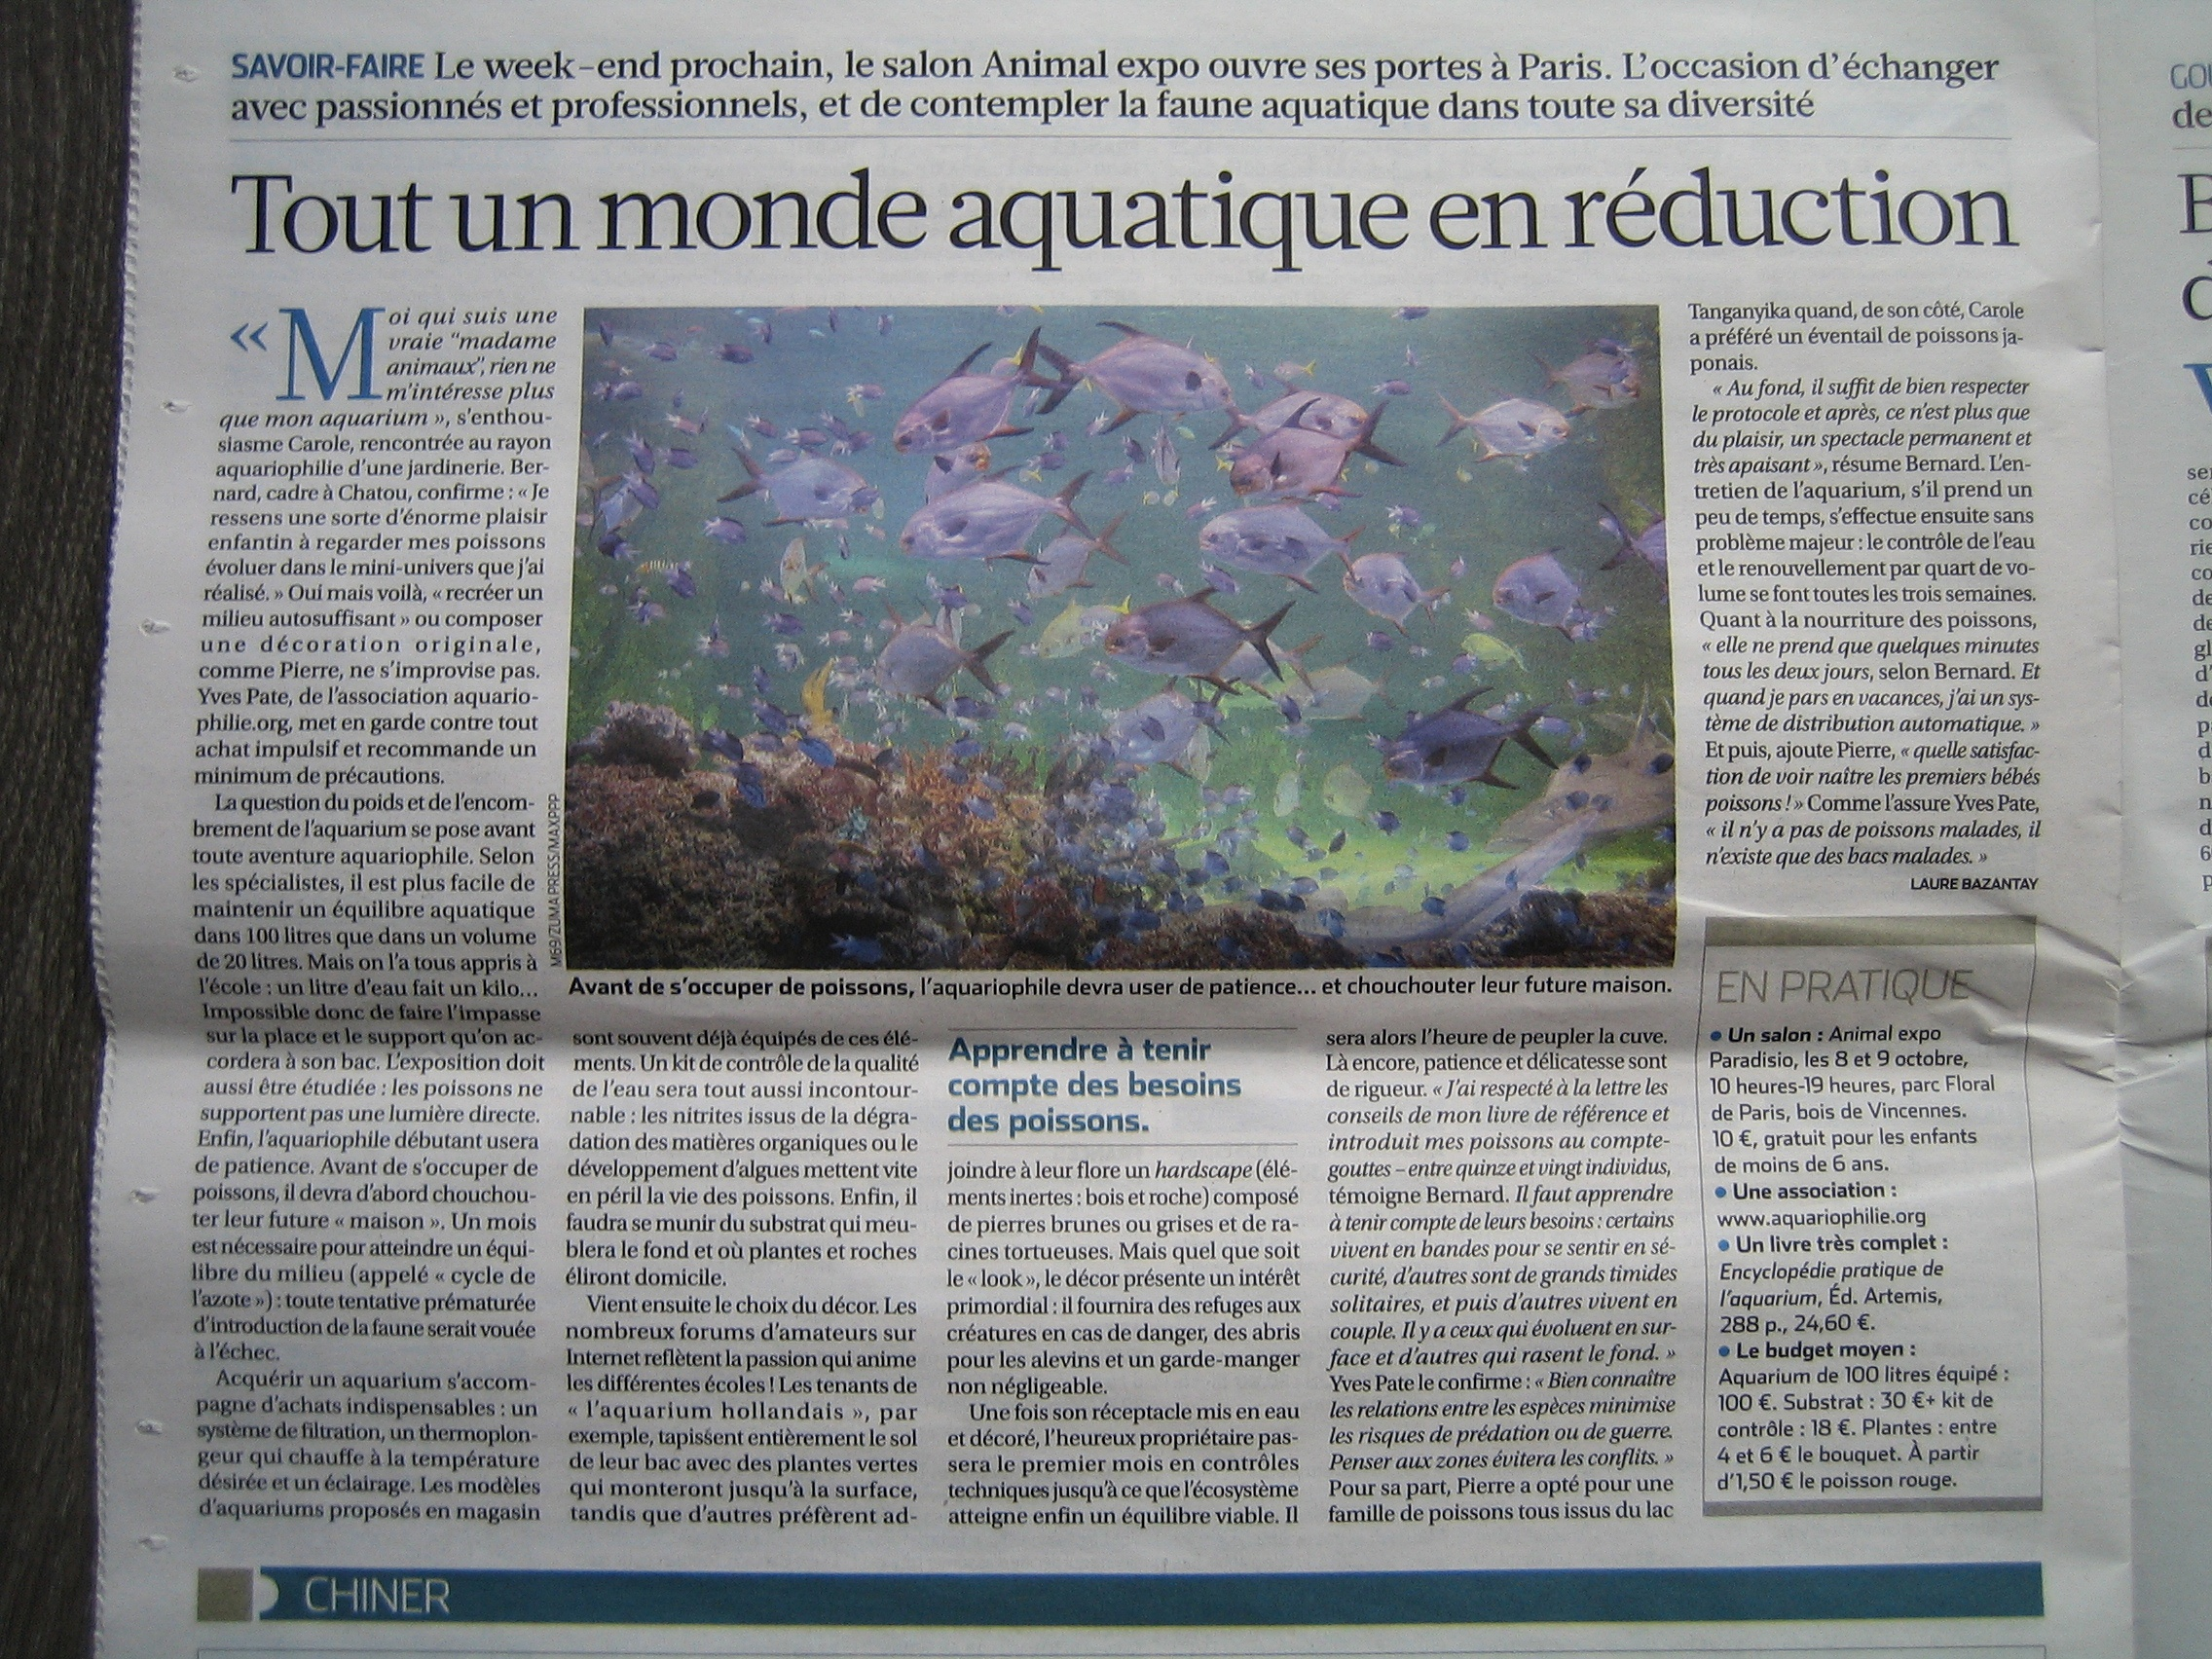 Salon De L Aquariophilie On Parle De Nous